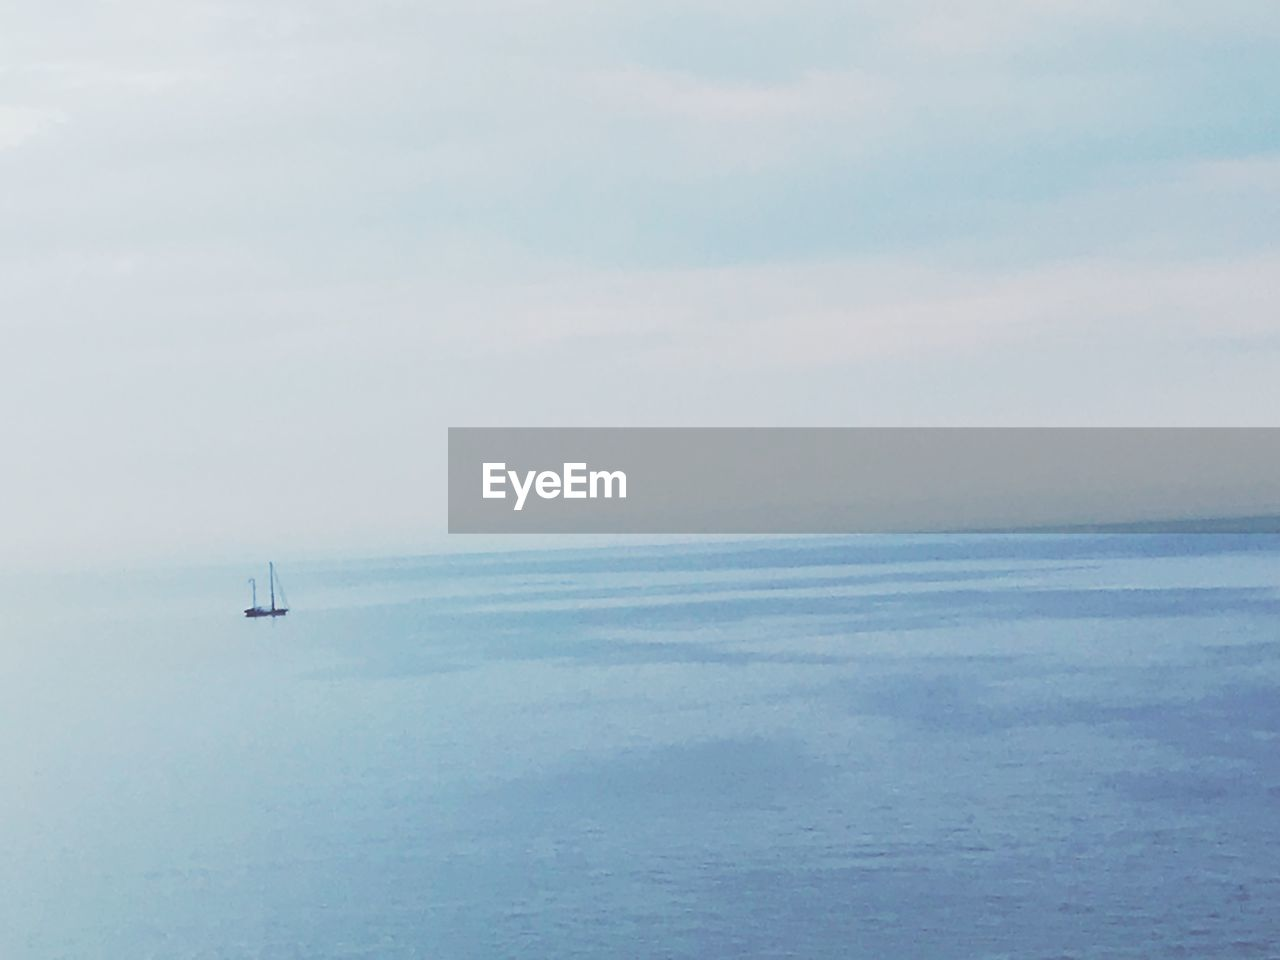 sea, water, horizon over water, scenics - nature, horizon, sky, beauty in nature, nautical vessel, transportation, mode of transportation, tranquil scene, tranquility, nature, day, no people, sailing, waterfront, cloud - sky, travel, outdoors, sailboat, anchored